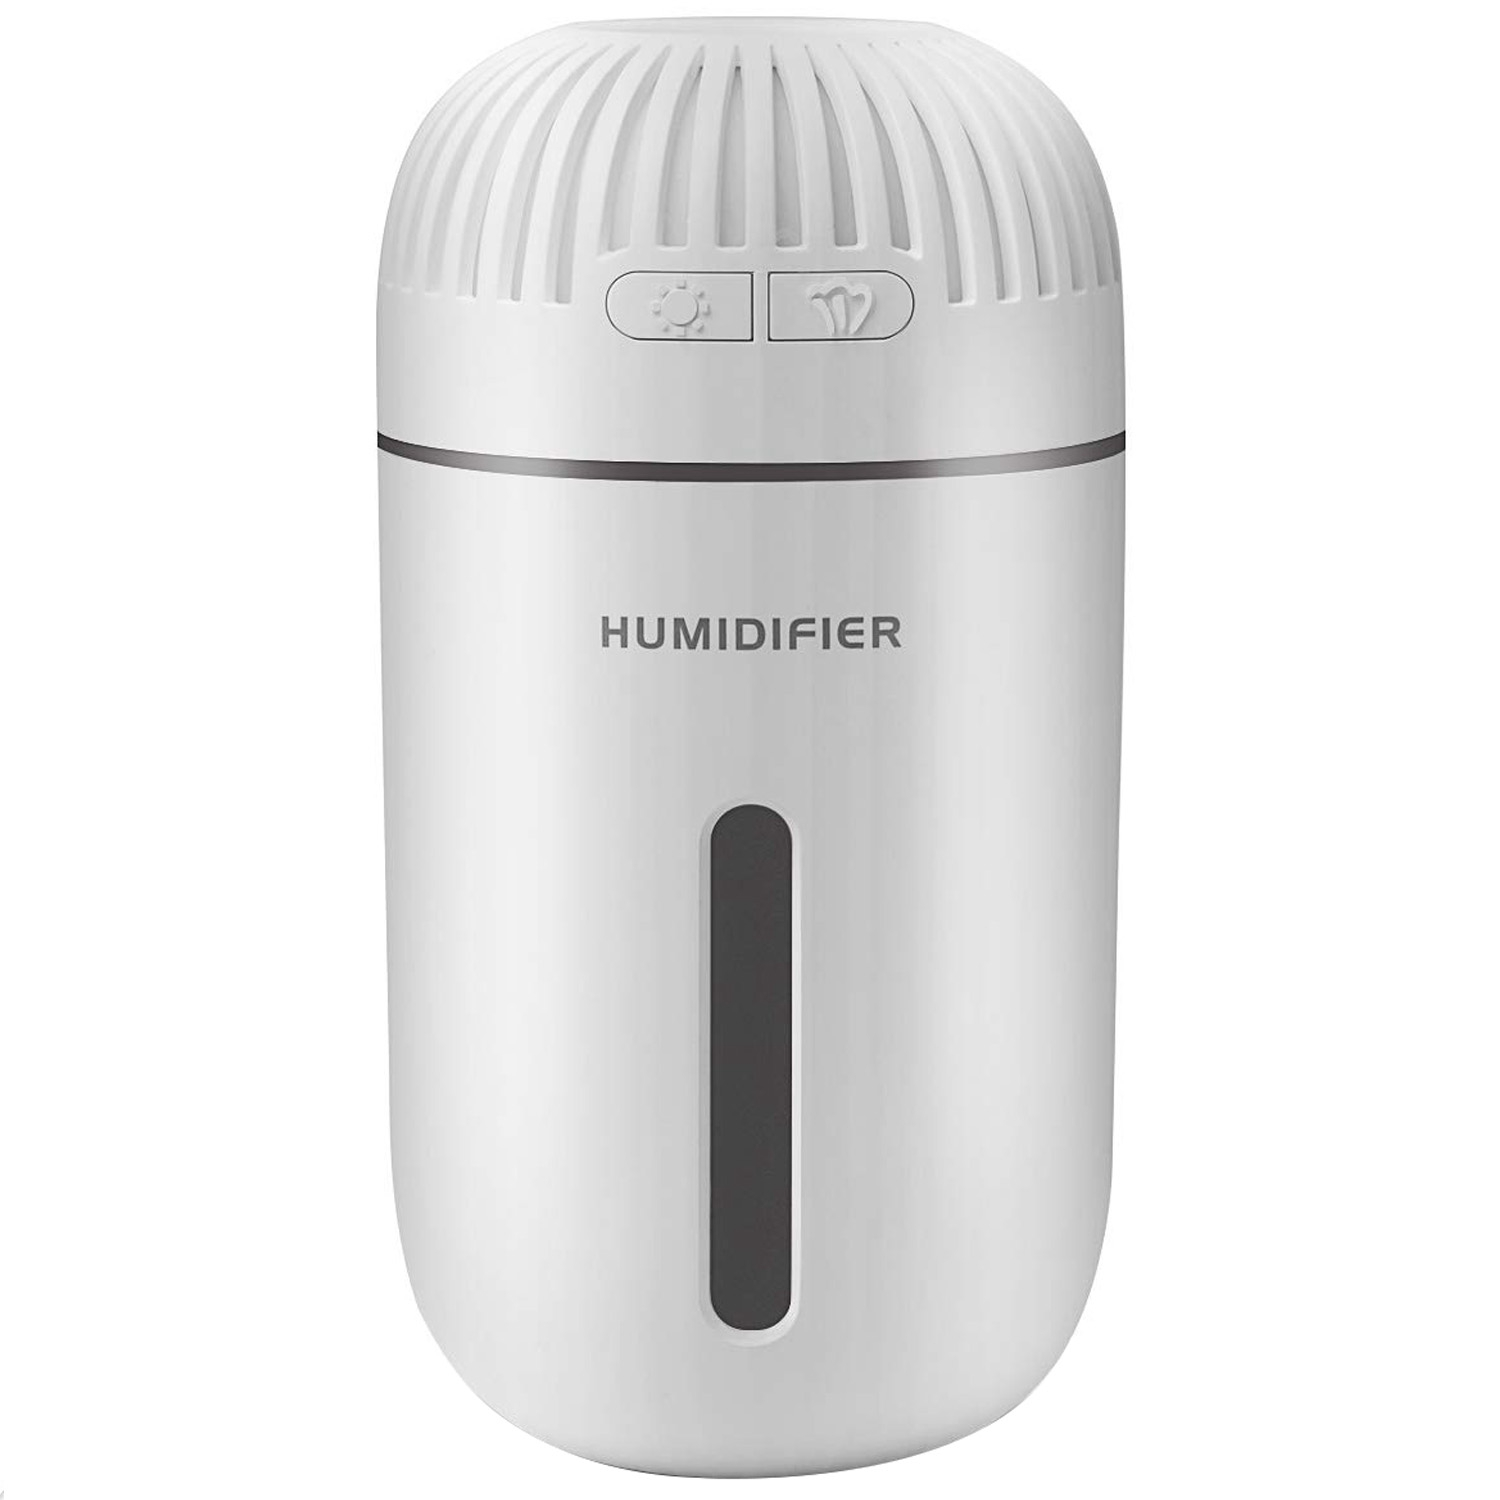 Mini Humidifier Small Humidifier For Bedroom Baby With 350Ml Water Tank  Whisper Quiet Operation  Automatic Shut Off And 7 Col|Humidifiers| |  - title=